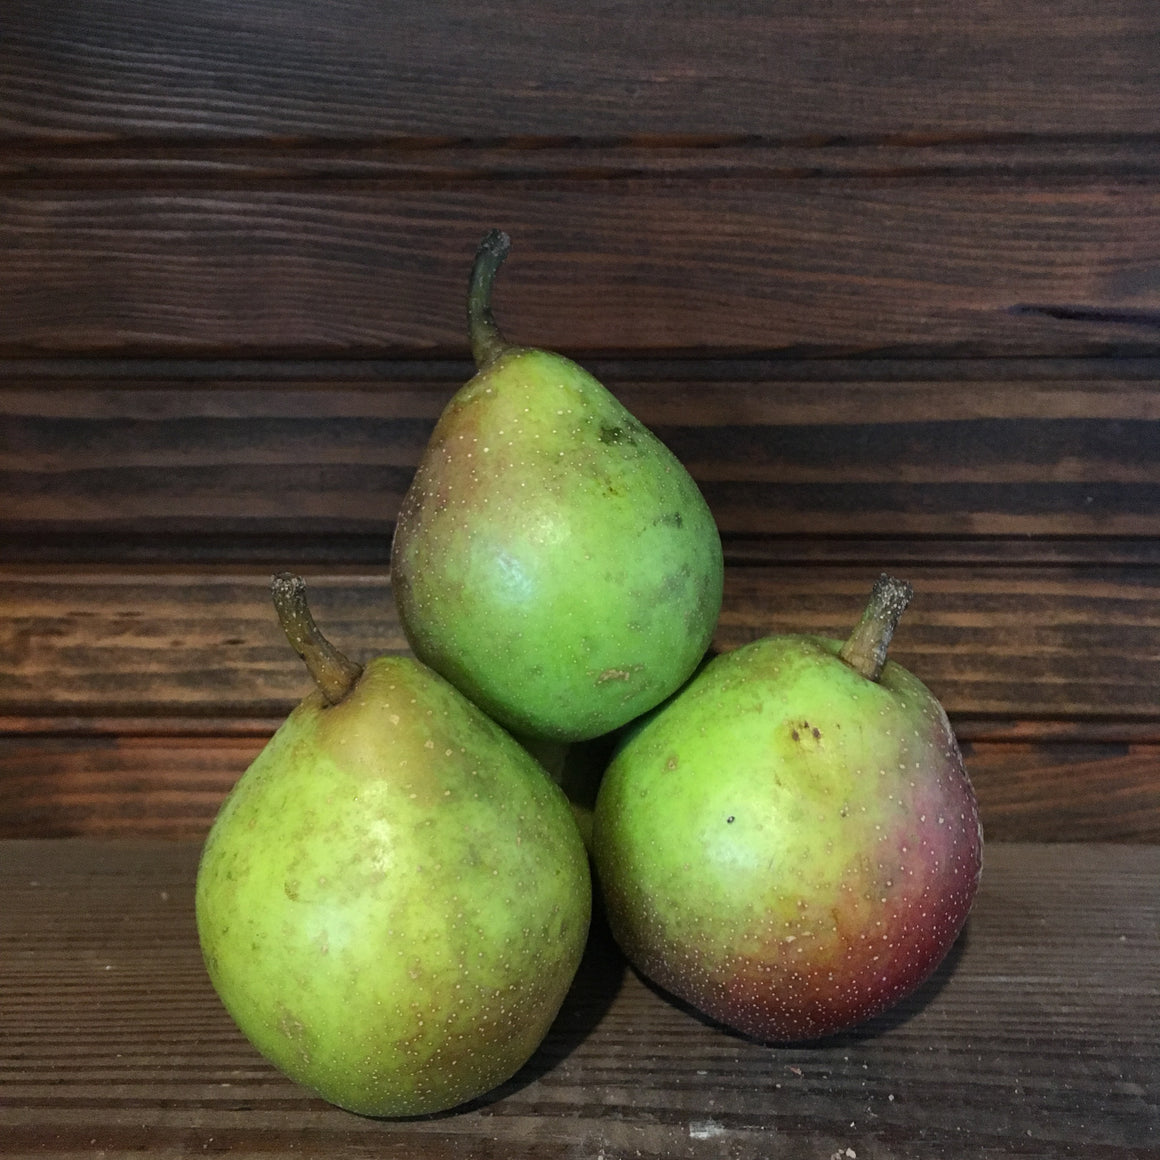 Produce - Large Pears